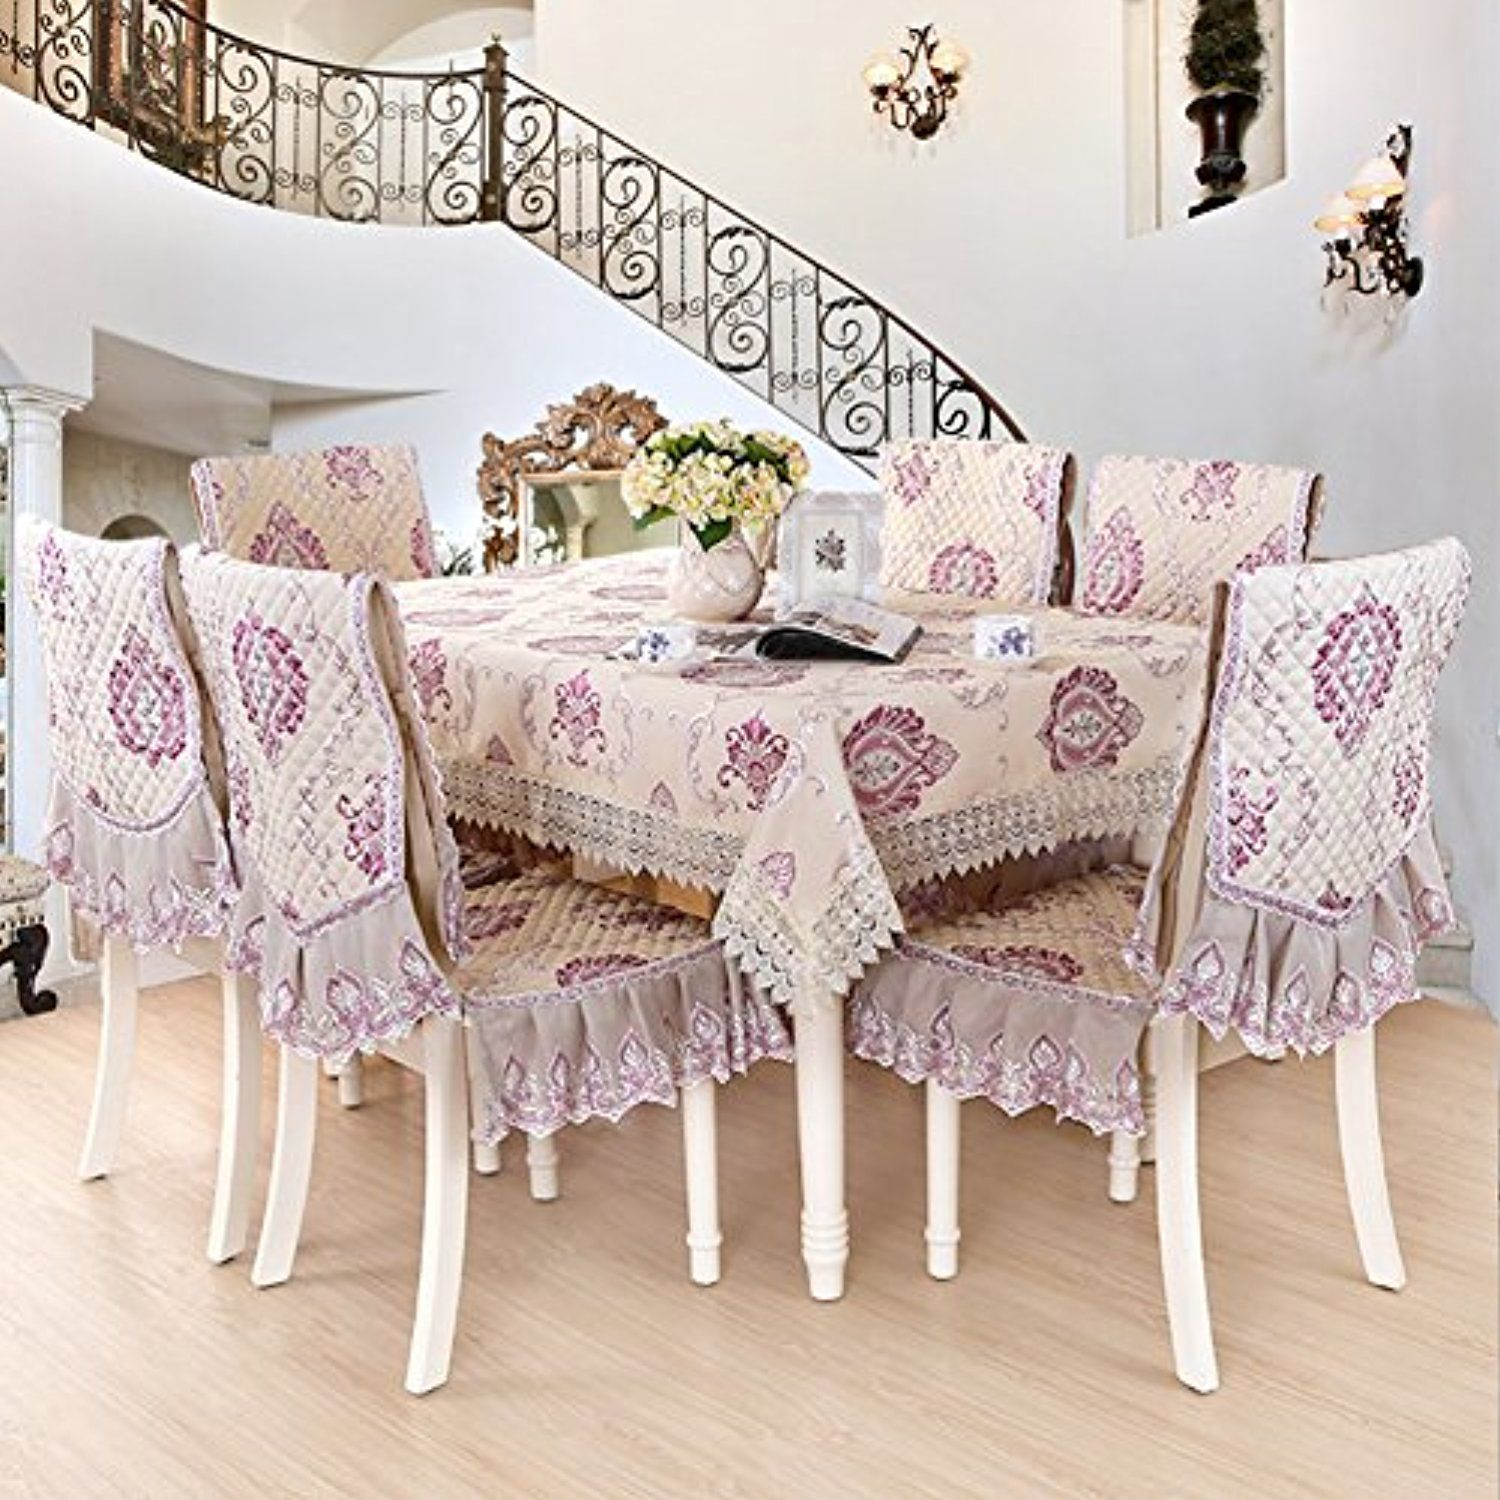 Chair Cover Lace Table Cloth Coffee Covereuropean Style Suitschair